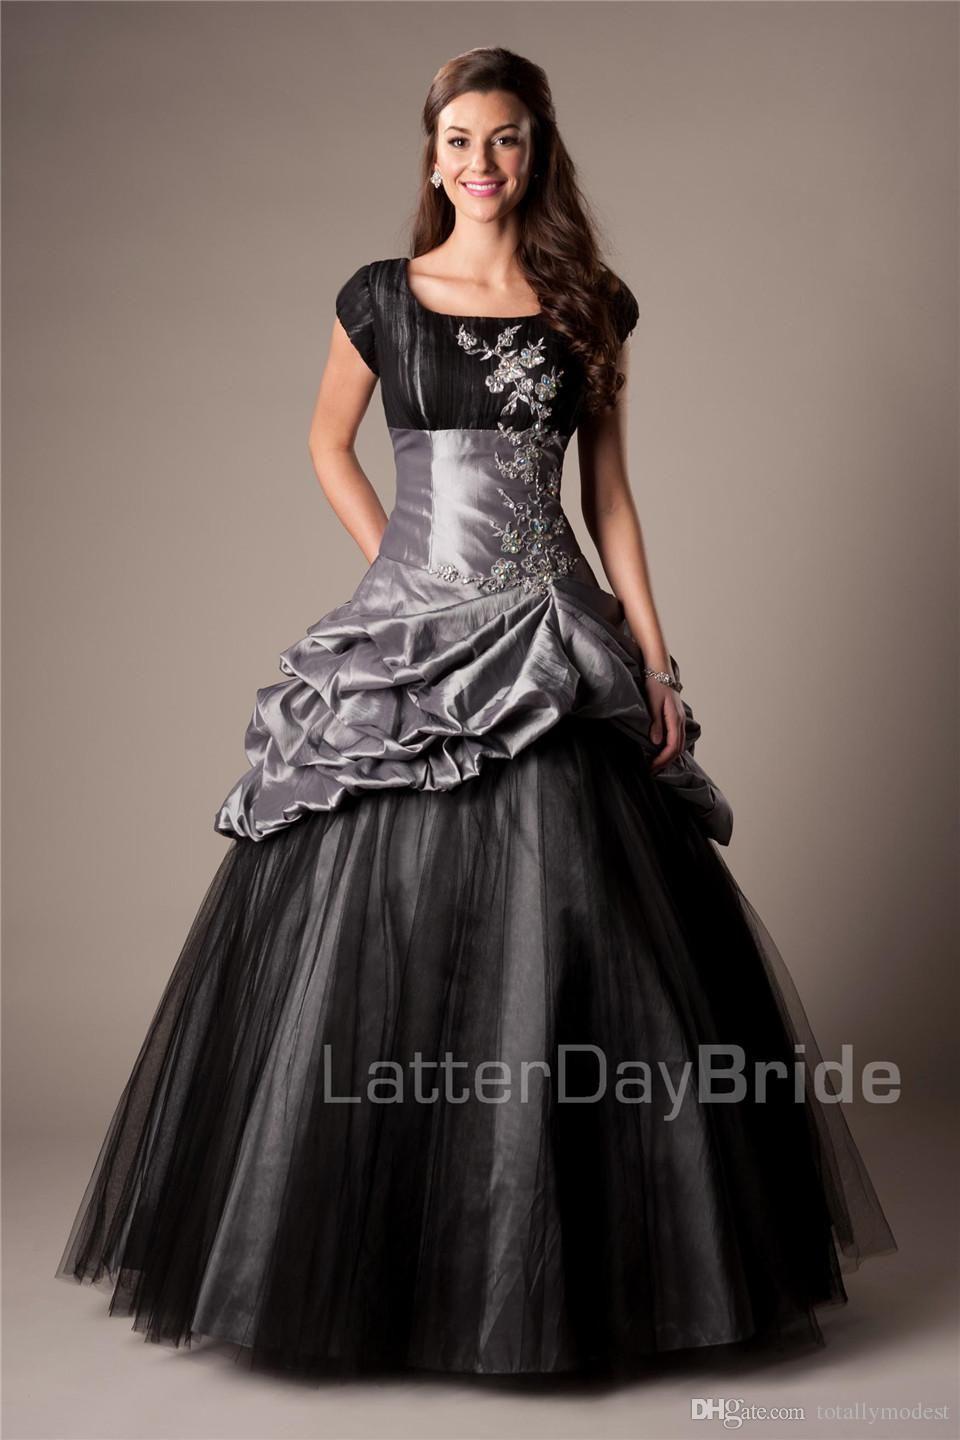 52ed5670c3a Royal Blue Black Long Ball Gown Modest Prom Dresses With Cap Sleeves  Vintage Short Sleeves Taffeta Seniors Puffy Prom Party Dresses 2016